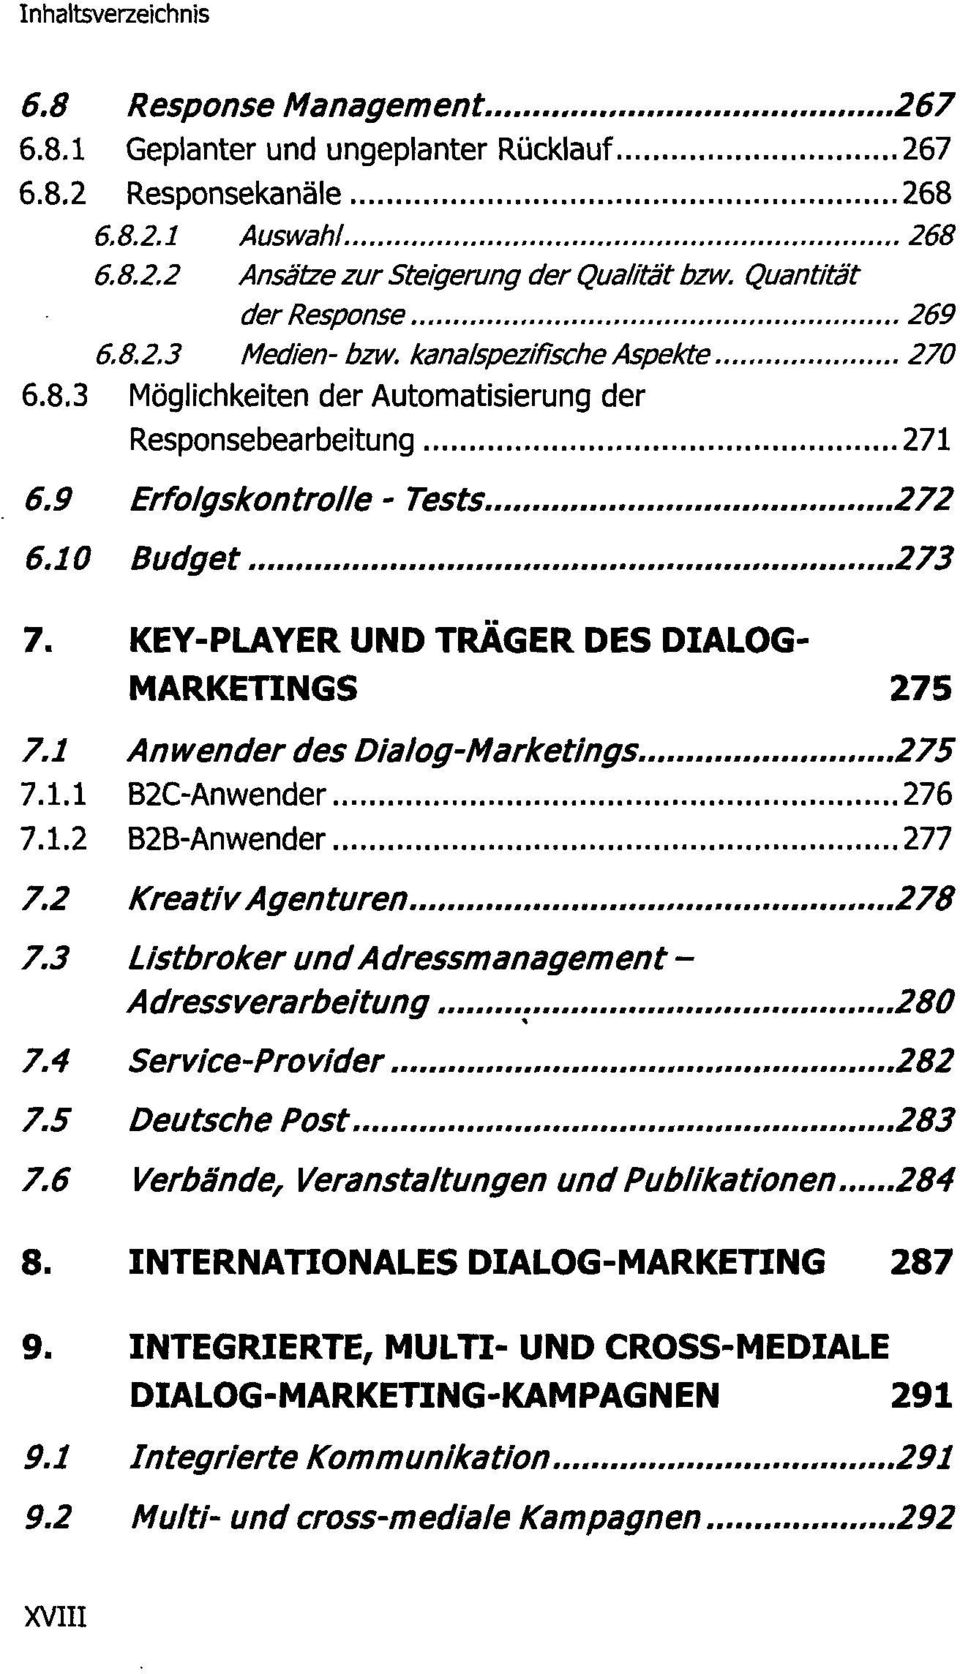 KEY-PLAYER UND TRÄGER DES DIALOG- MARKETINGS 275 7.1 Anwender des Dialog-Marketings....275 7.1.1 B2C-Anwender 276 7.1.2 B2B-Anwender 277 7.2 Kreativ Agenturen 278 7.